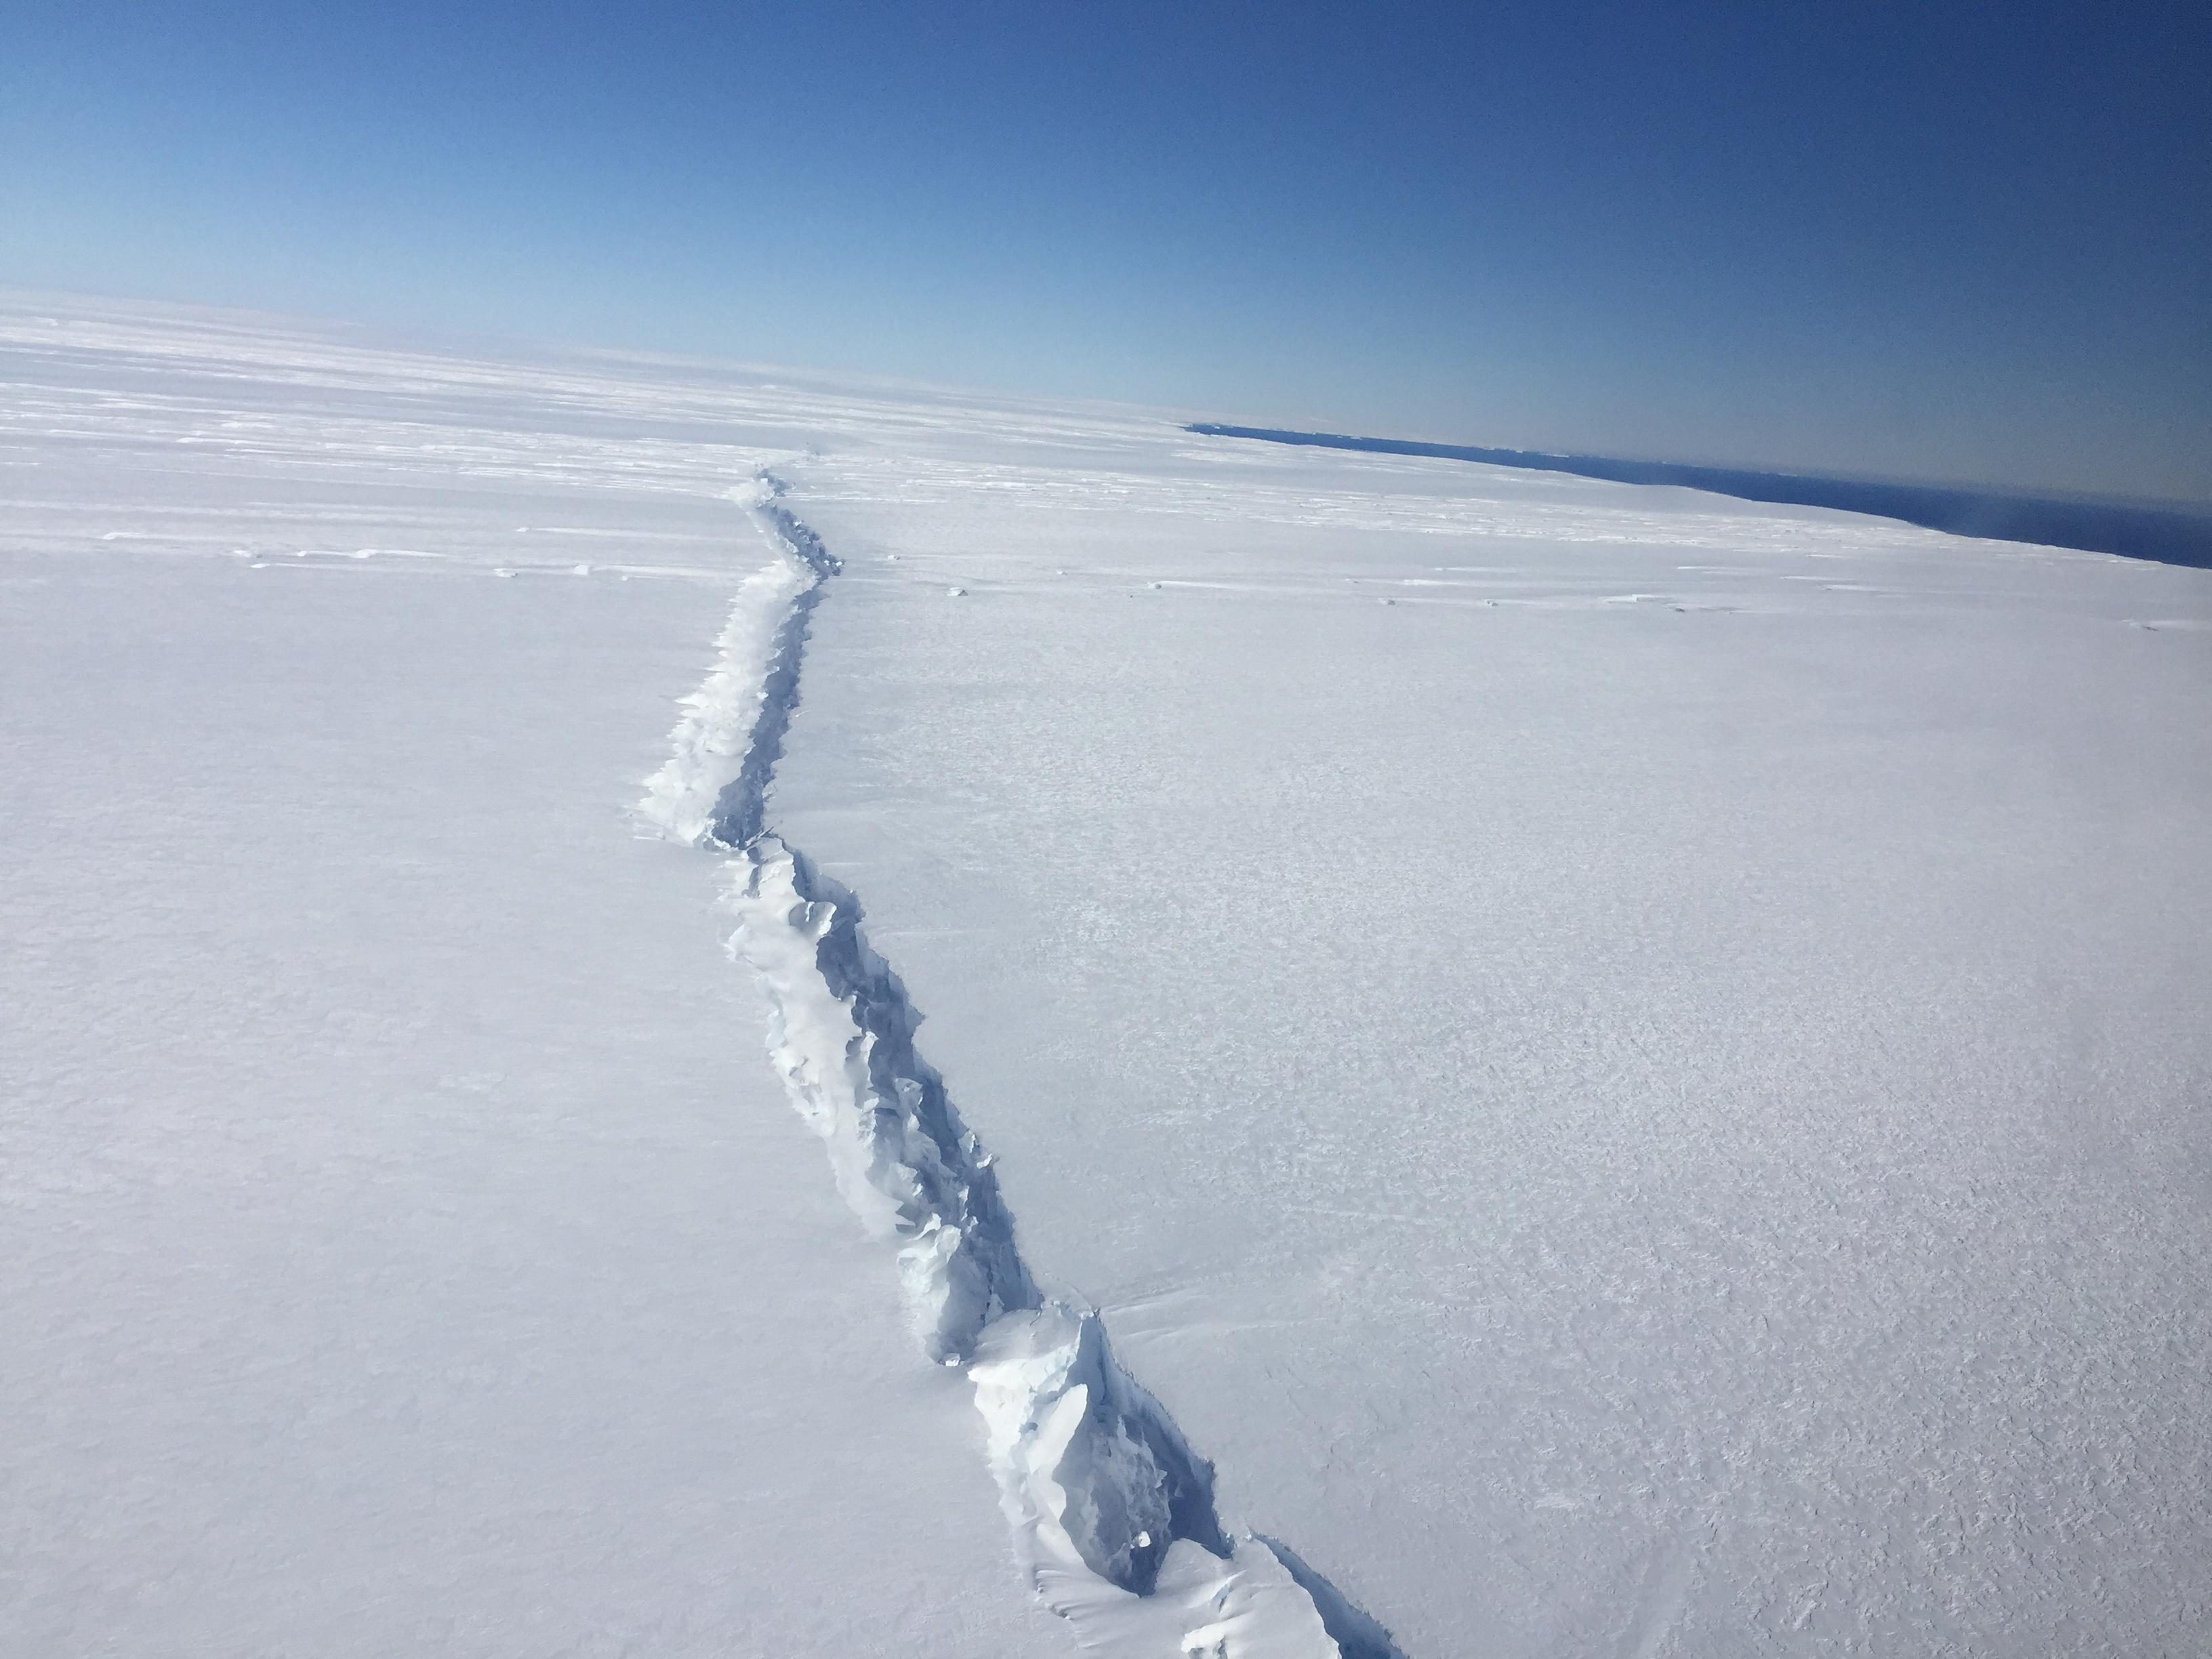 There is a big fissure in the south pole that collapses two Hongkong islands! Great changes are taking place in the earth